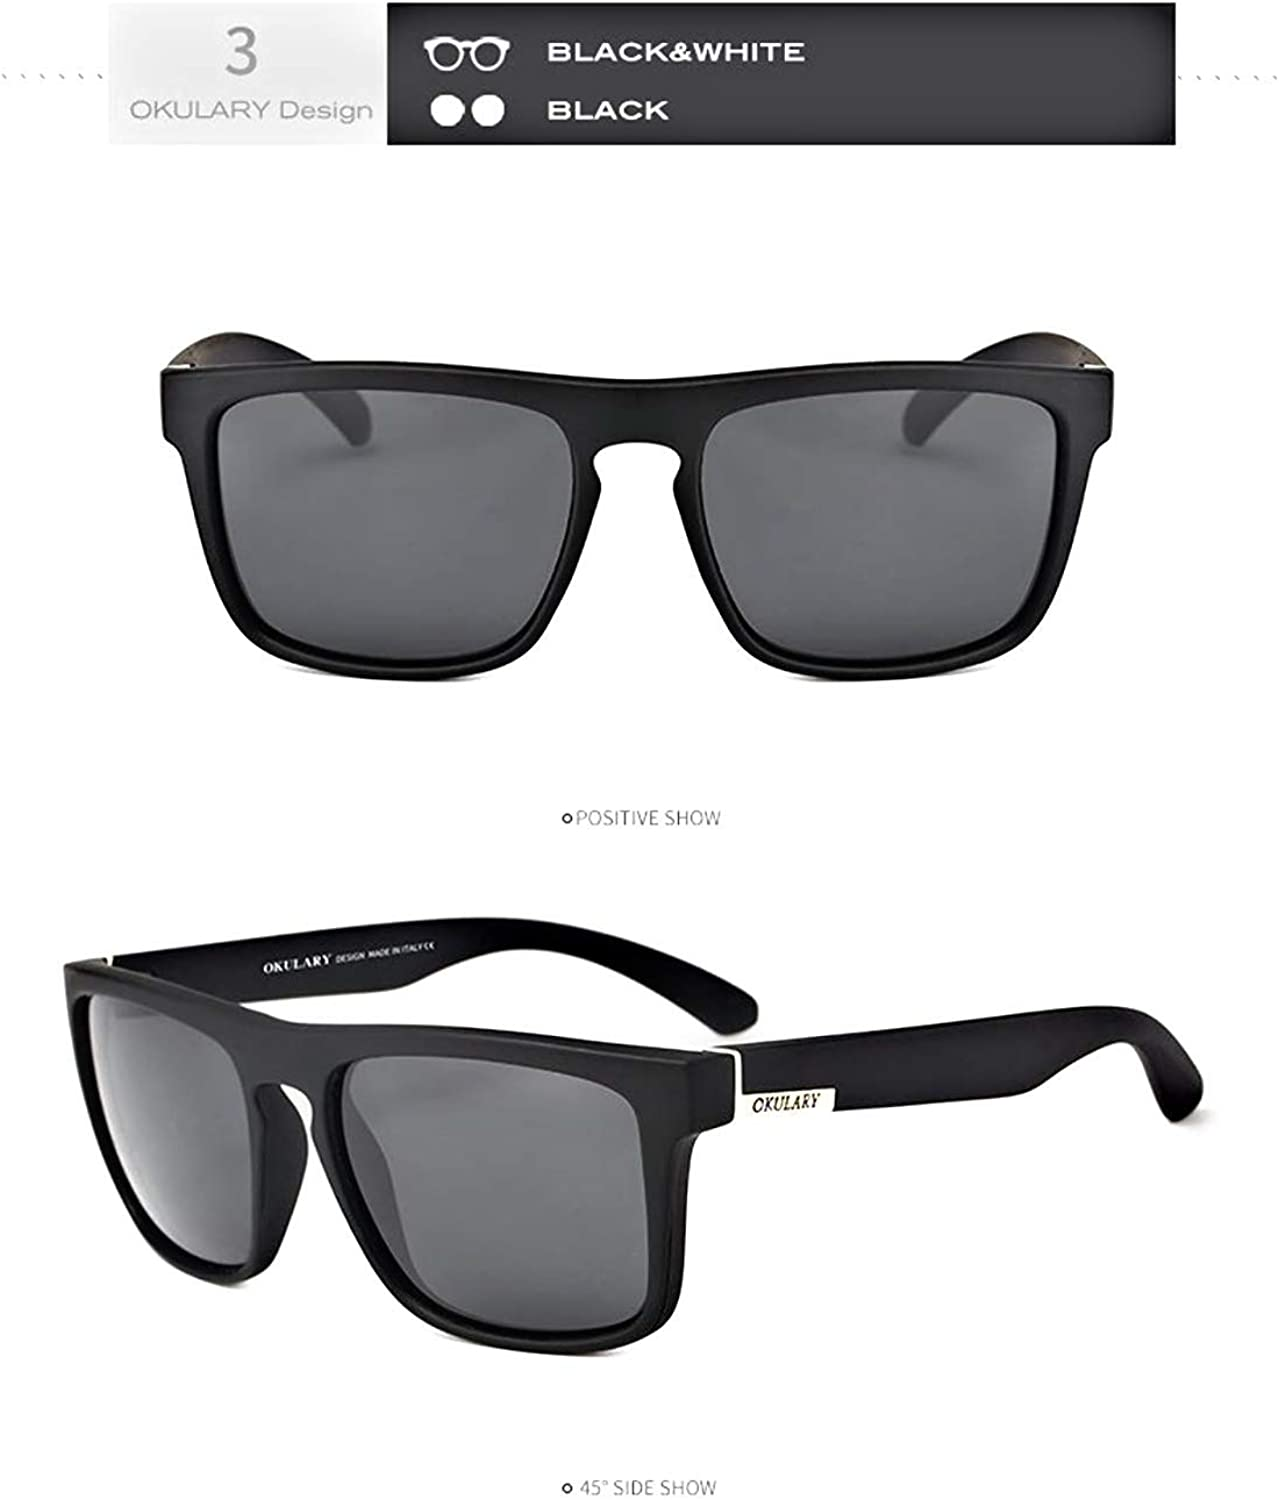 YLNJYJ Polarized Square Sunglasses Men Outdoors Sport Sun Glasses Safty Shades Eyewears With Boxes